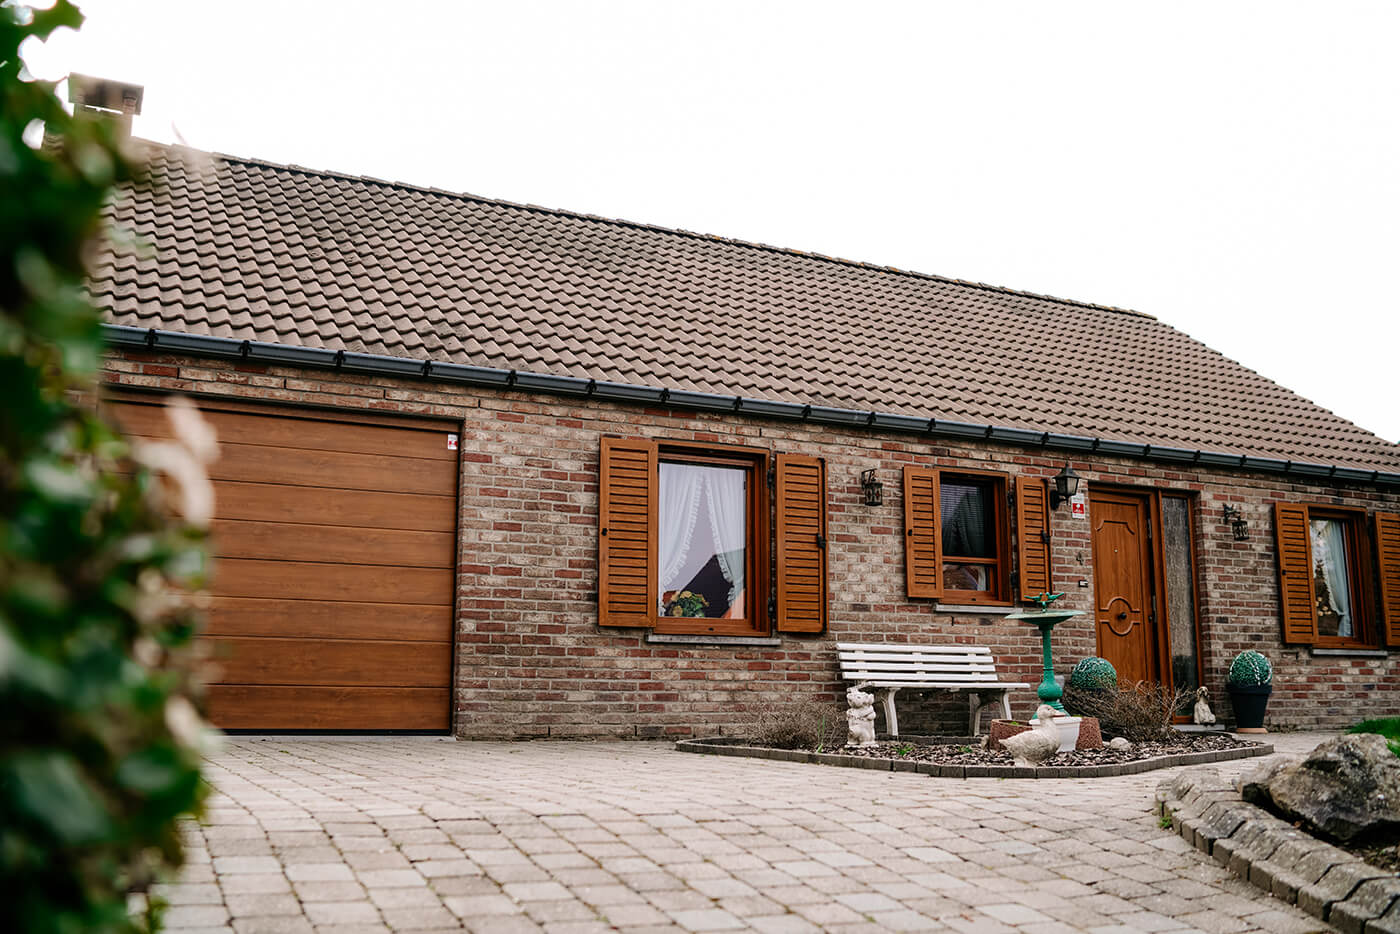 Made-to-measure sectional garage door - Raposo Charleroi, Image n°3